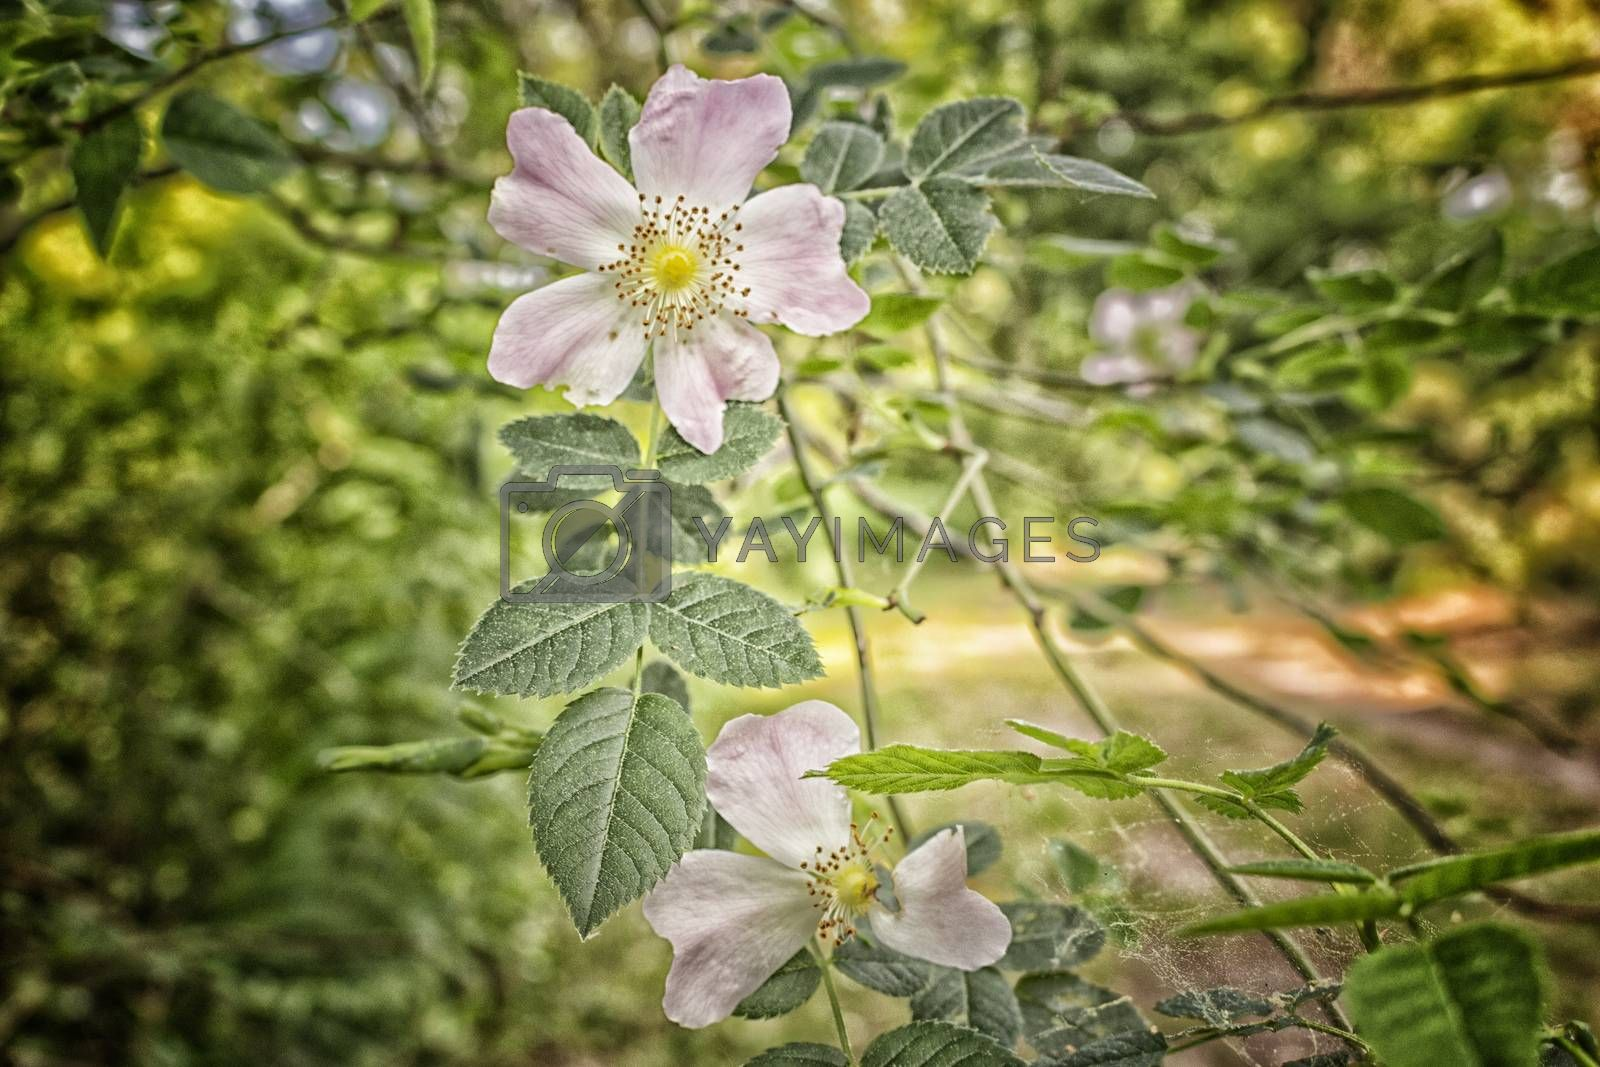 Rosa Canina in pinewood forest near Marina Romea by paocasa